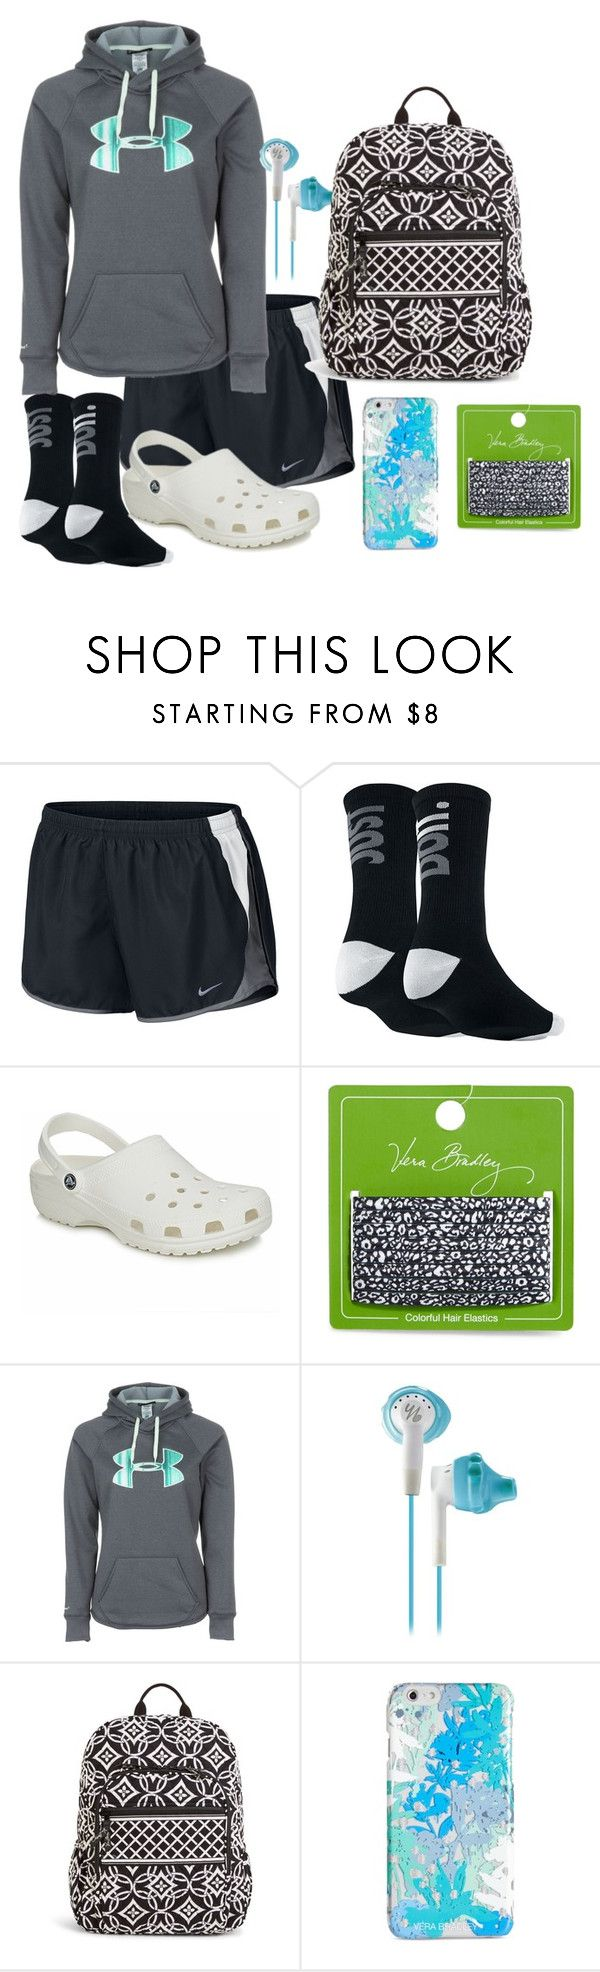 """Crocs"" by nknudson-04 on Polyvore featuring NIKE, Crocs, Vera Bradley and Under Armour"